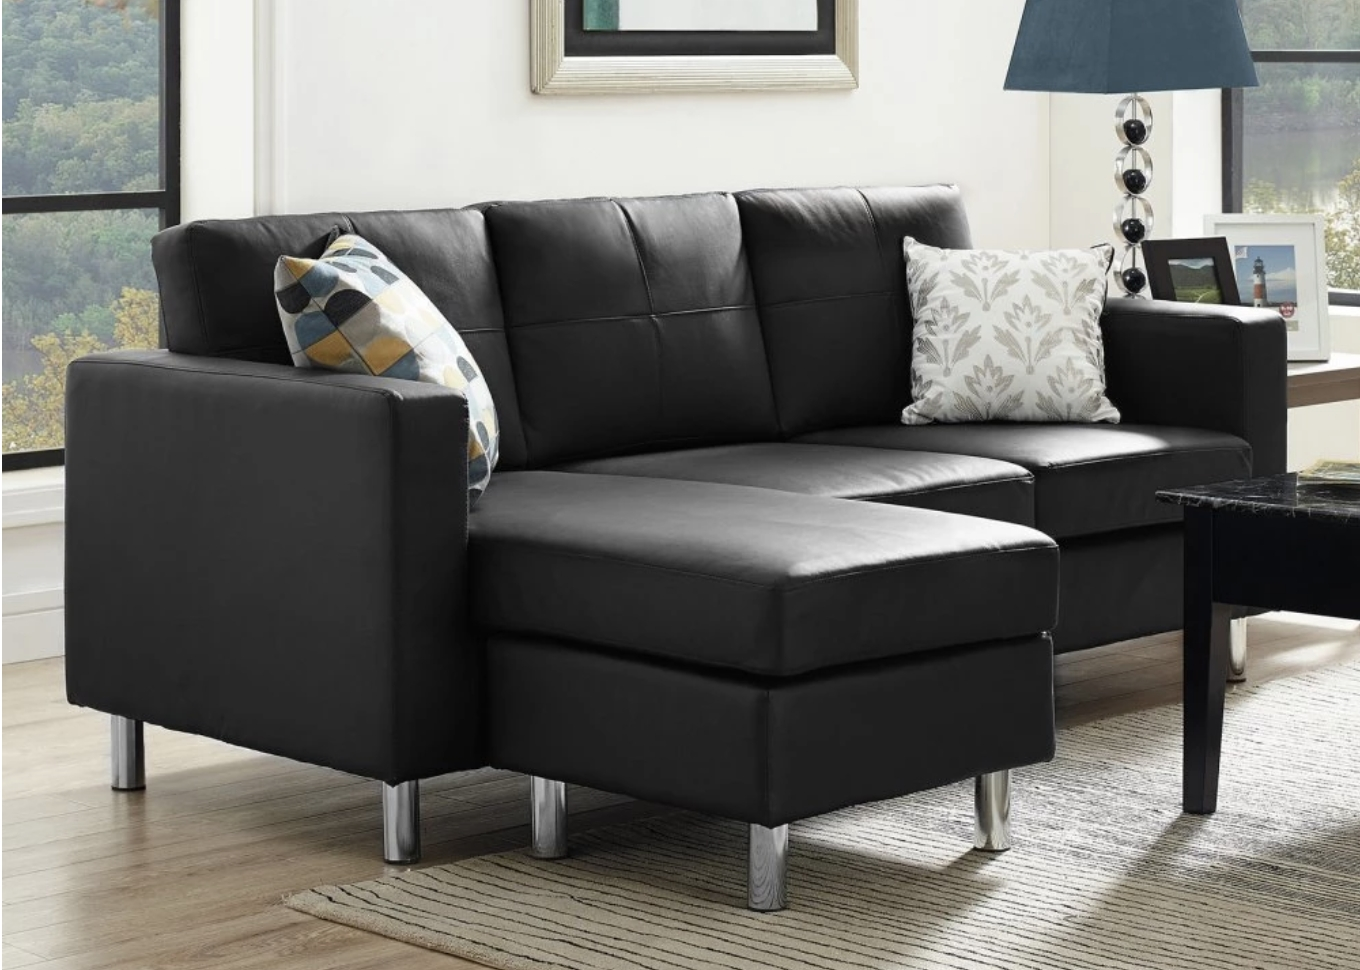 75 Modern Sectional Sofas For Small Spaces (2018) Within Sectional Sofas For Small Areas (Photo 4 of 10)